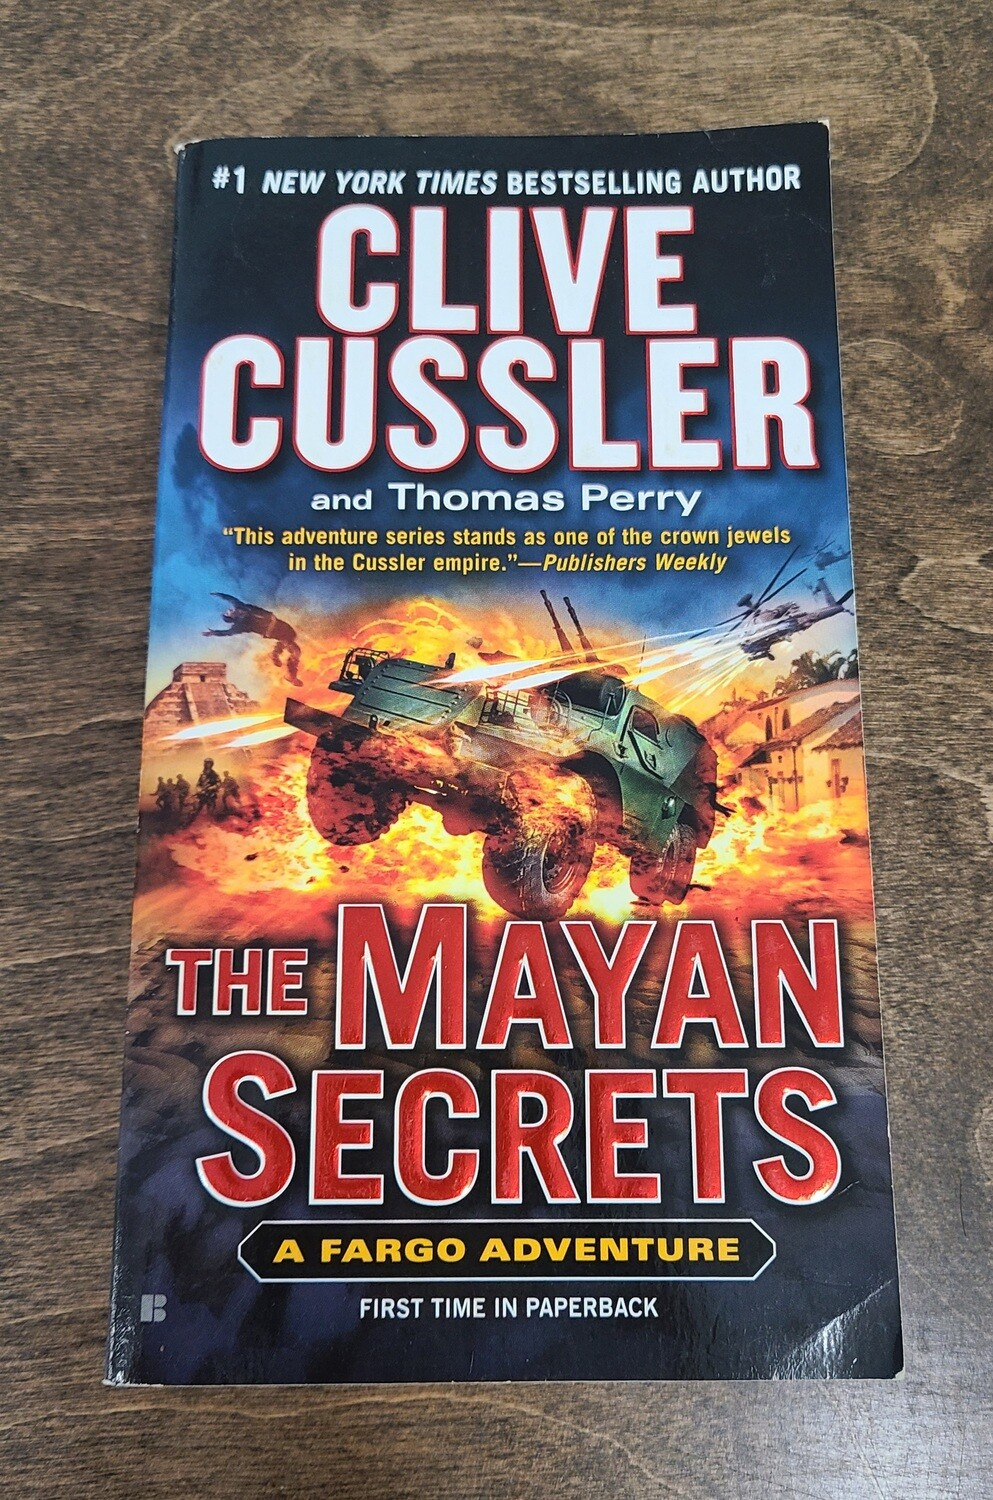 The Mayan Secrets by Clive Cussler and Thomas Perry - PB